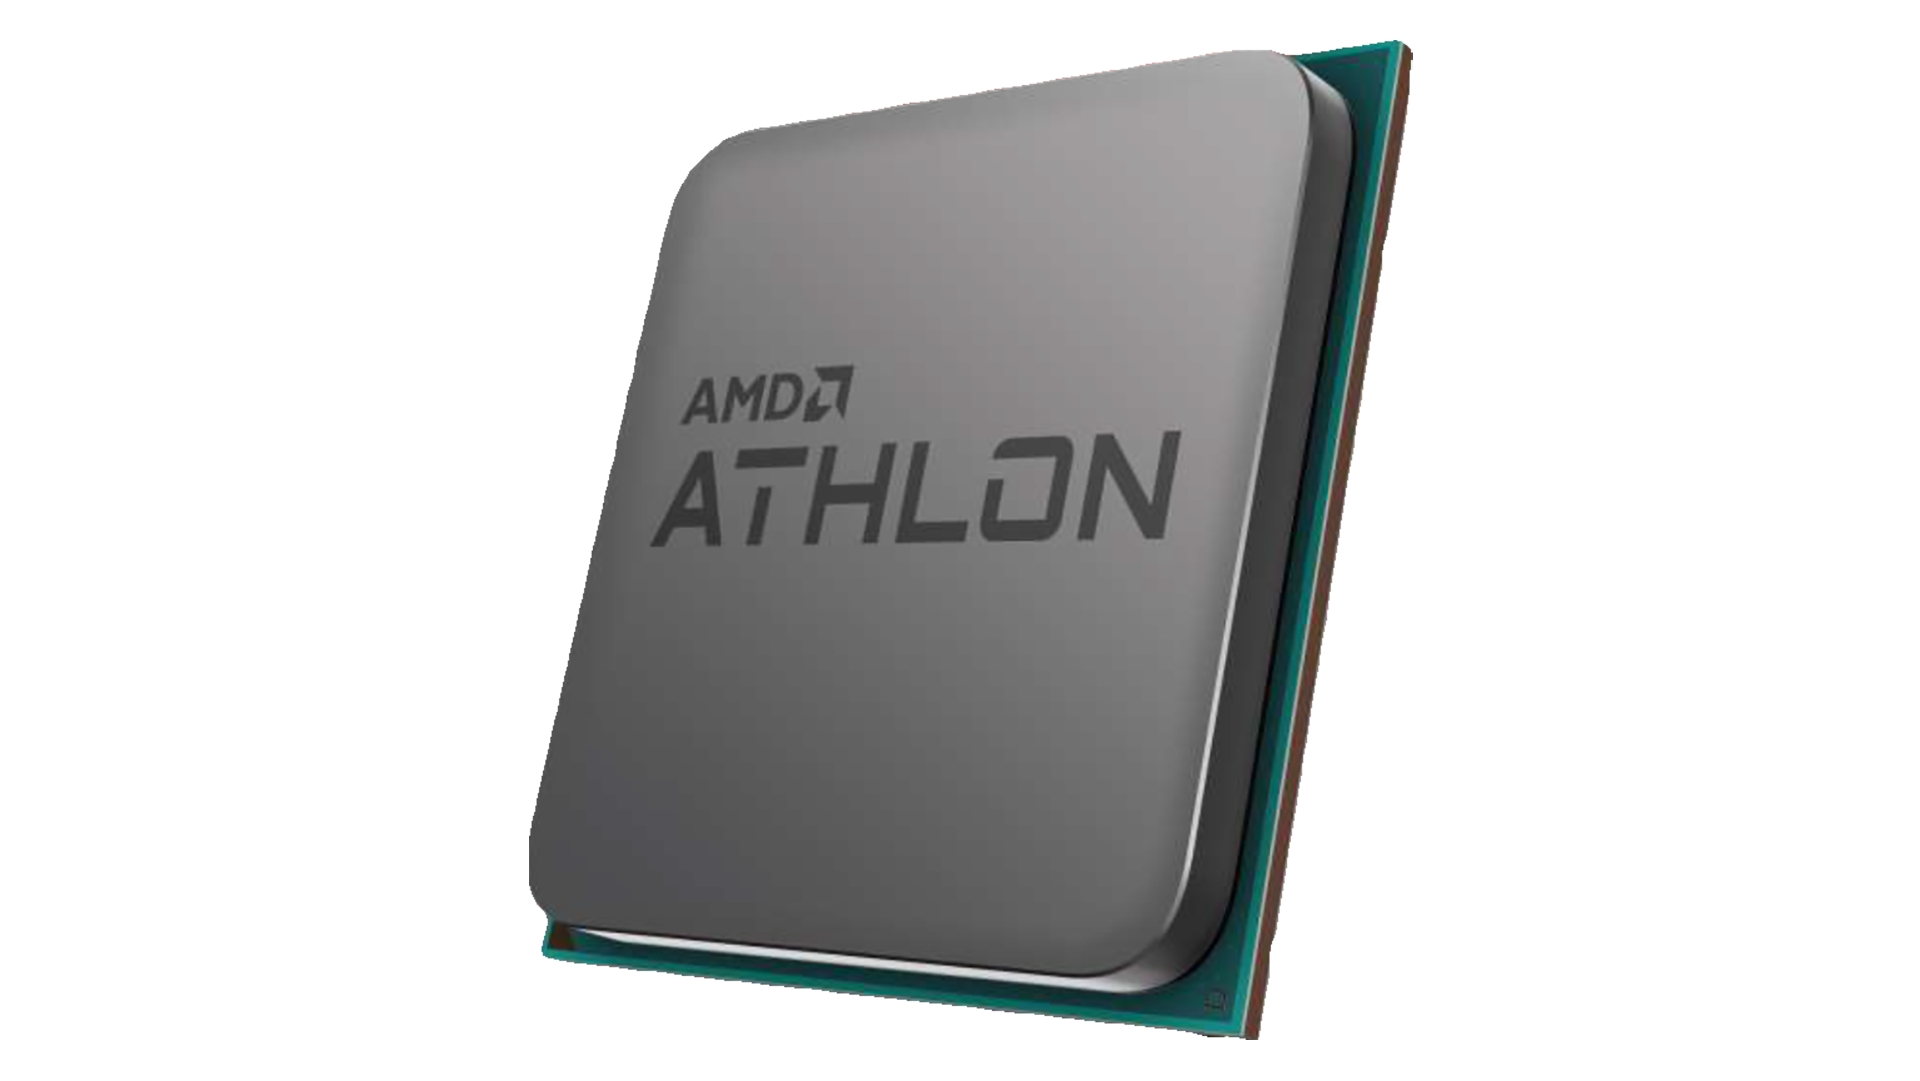 Amd Finally Takes On Intel S Pentium Chips With A 55 Apu Pcgamesn